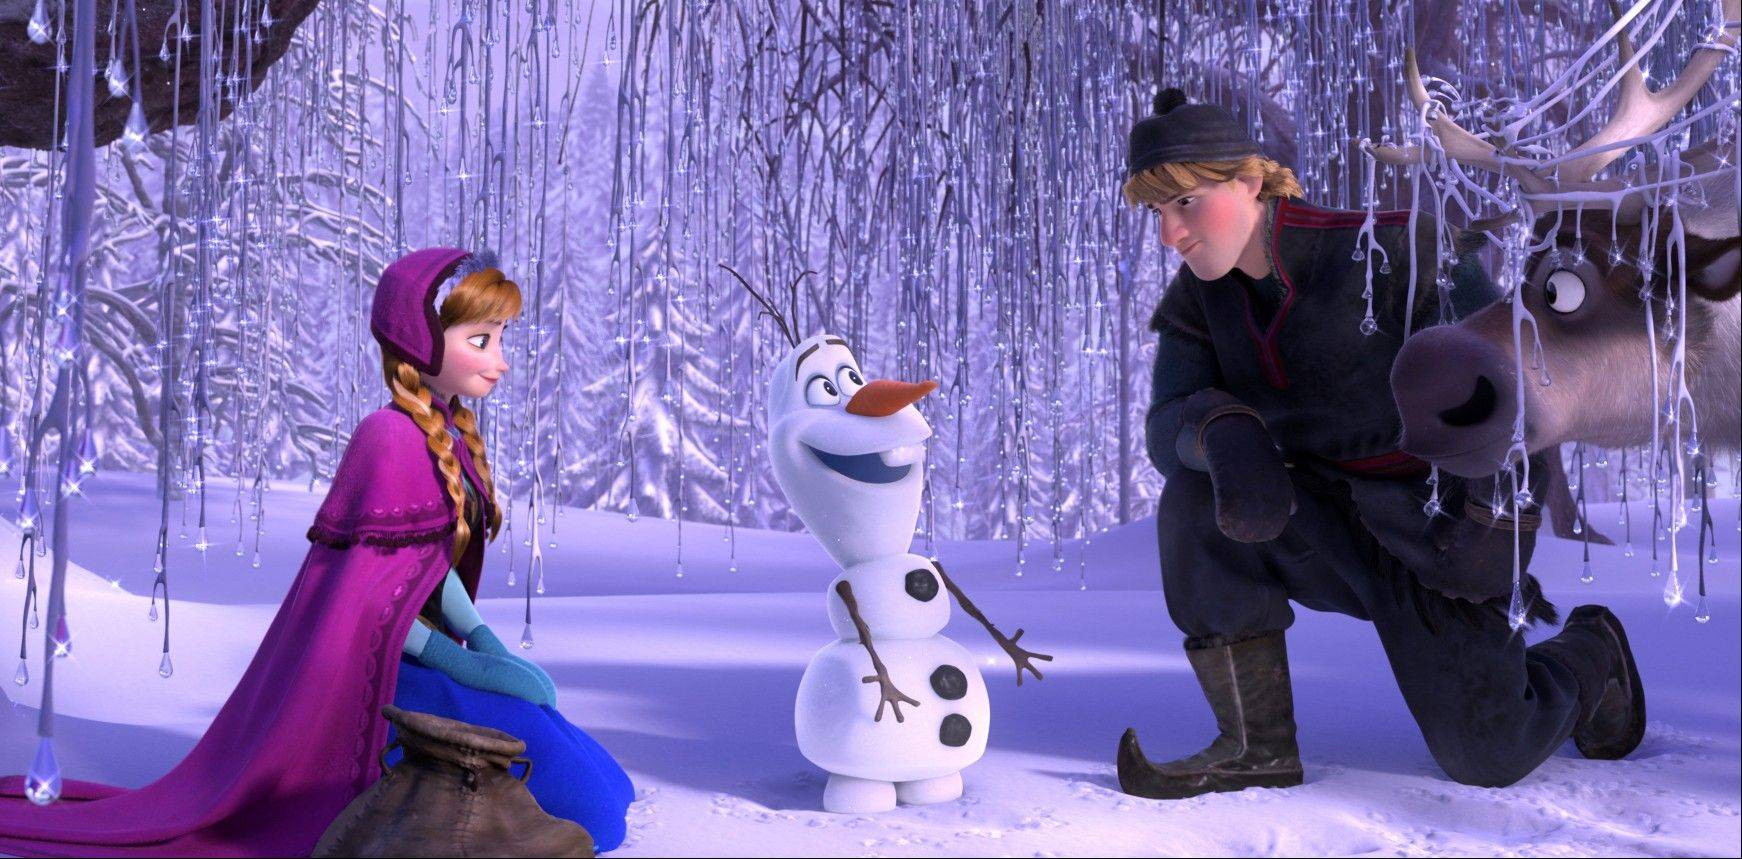 "Princess Anna (Kristen Bell) and Kristoff (Jonathan Groff) chat with Olaf the snowman (Josh Gad) in Walt Disney's animated tribute to sisterhood, ""Frozen."" The animated musical dropped a spot to No. 2 with its $22.2 million haul in its third weekend of release."